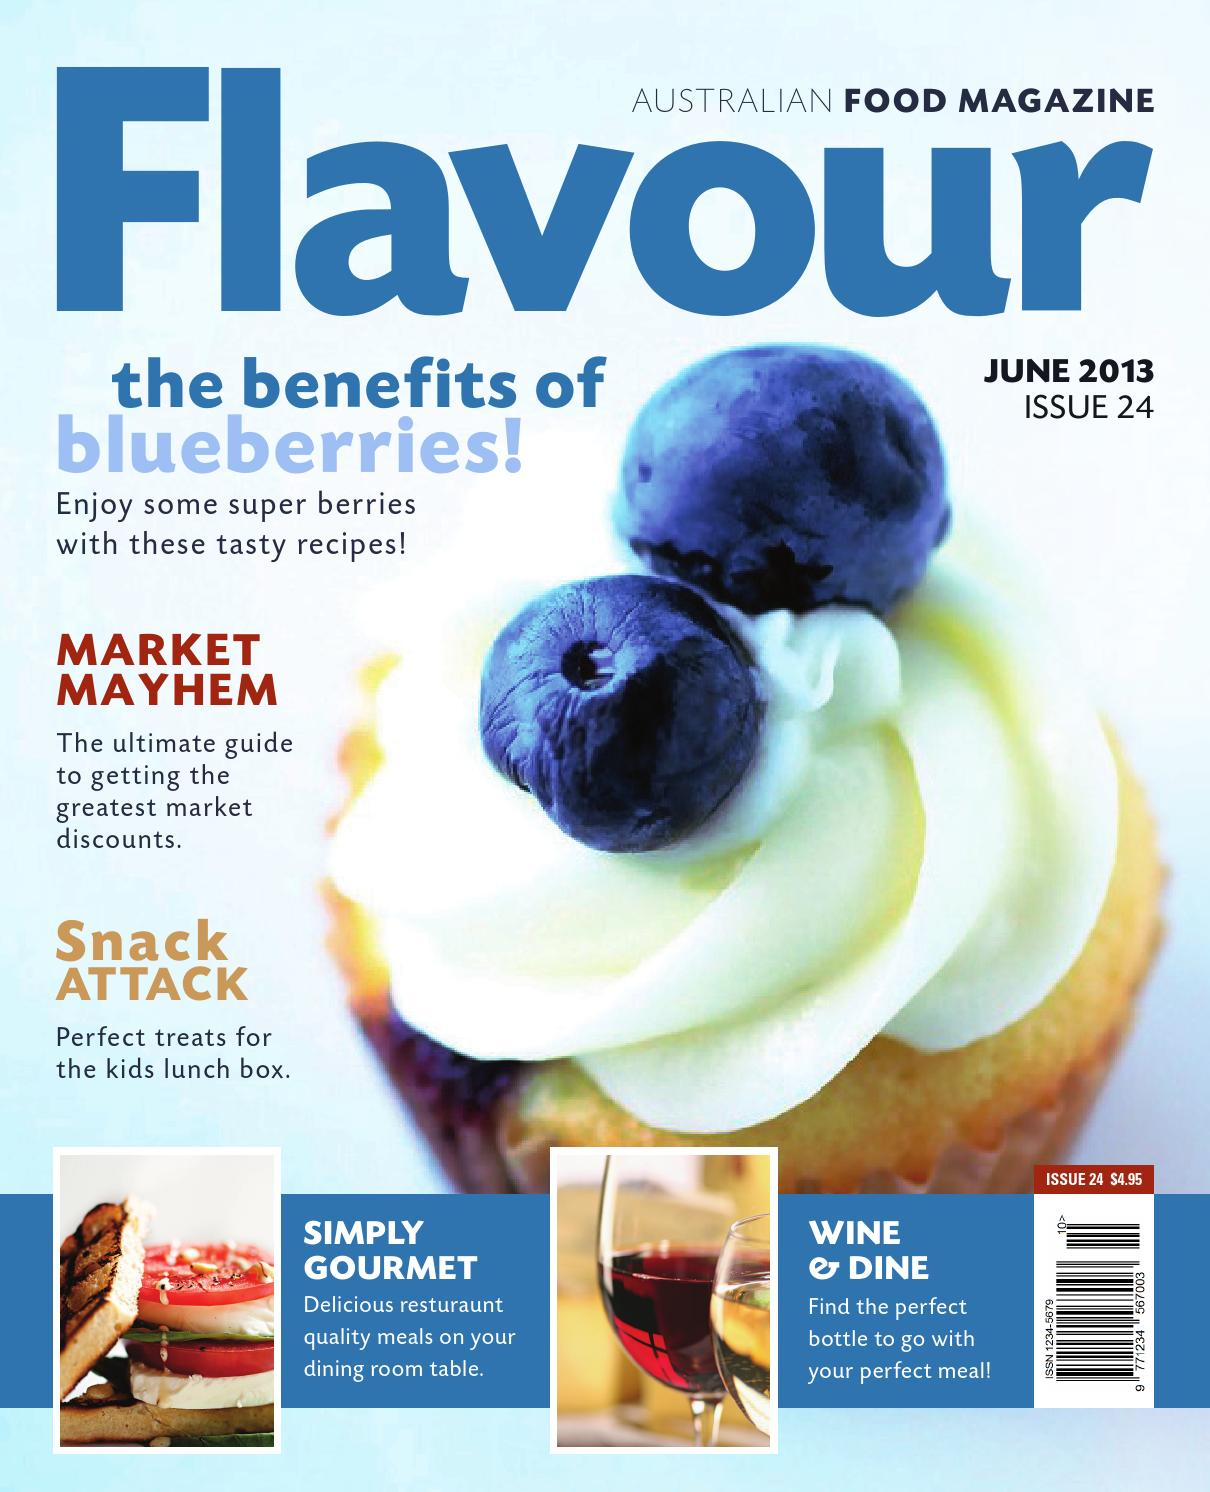 Flavour Food Magazine Example Spreads By Rachel Issuu